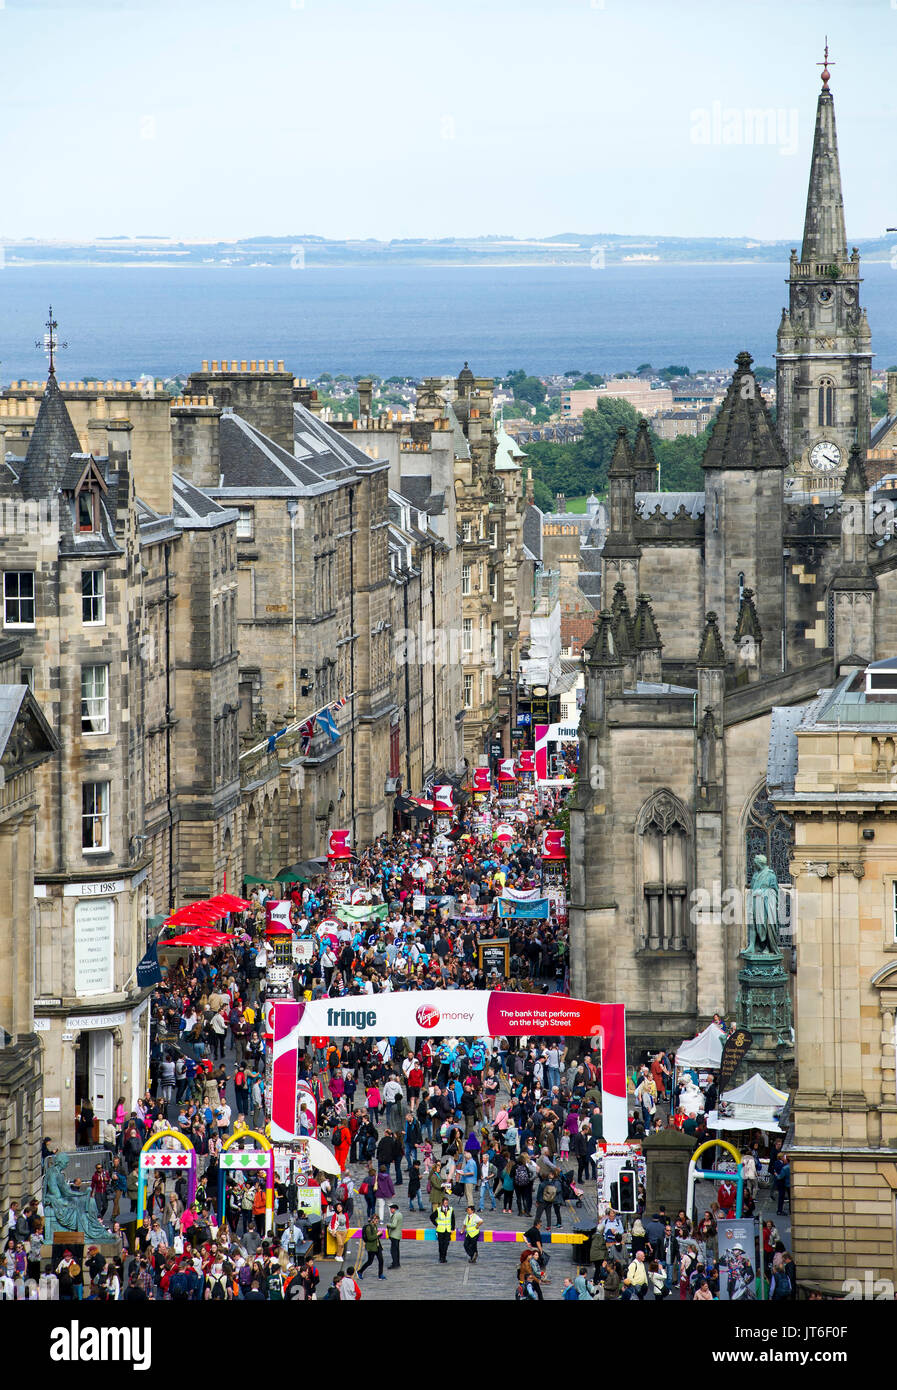 Visitors enjoy the street theatre on the Royal Mile, part of the Edinburgh International Festival Fringe. - Stock Image